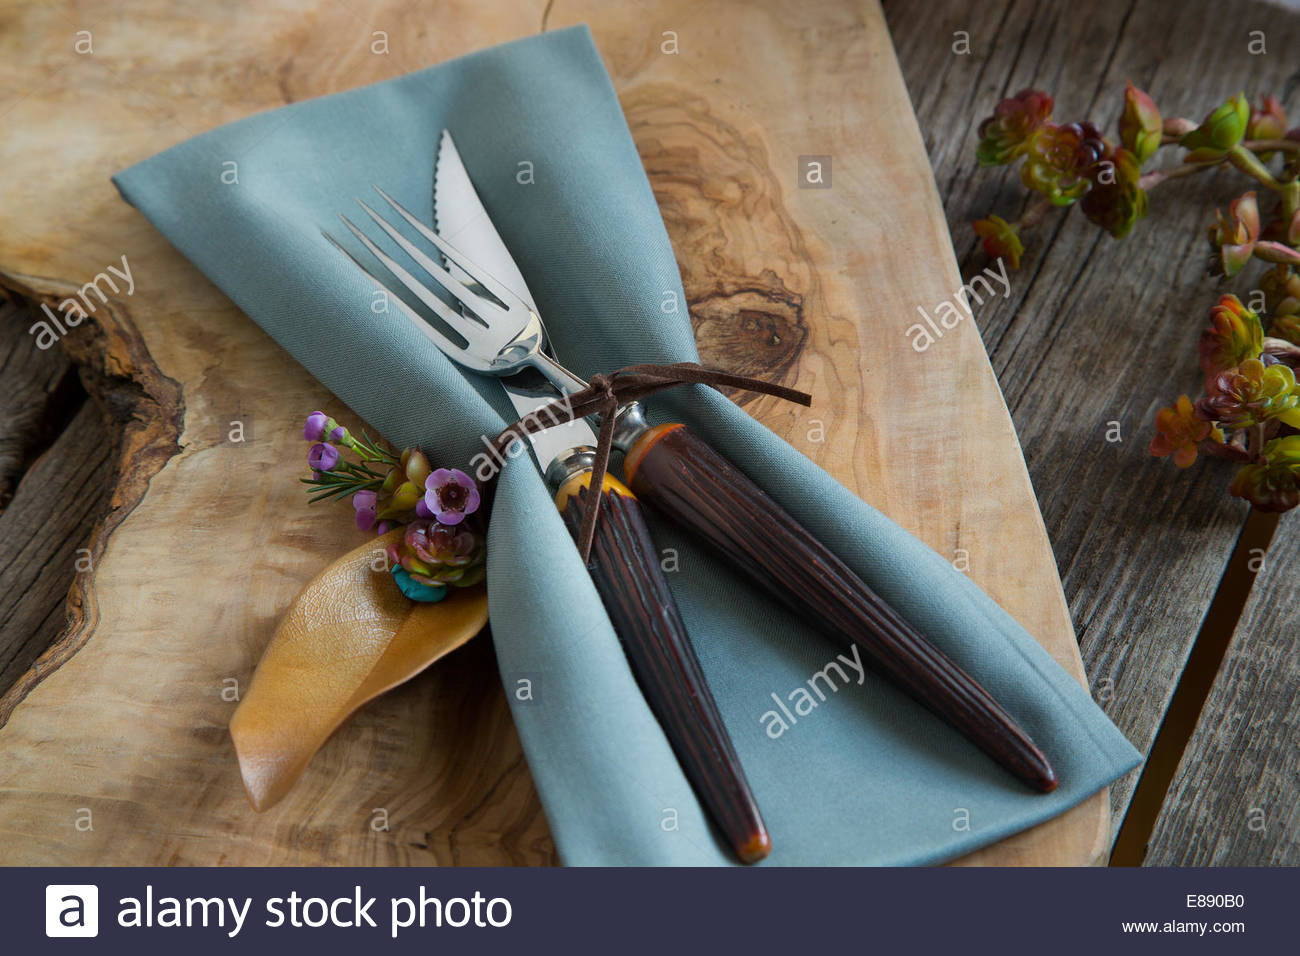 Tied napkin and silverware on wooden cutting board - Stock Image